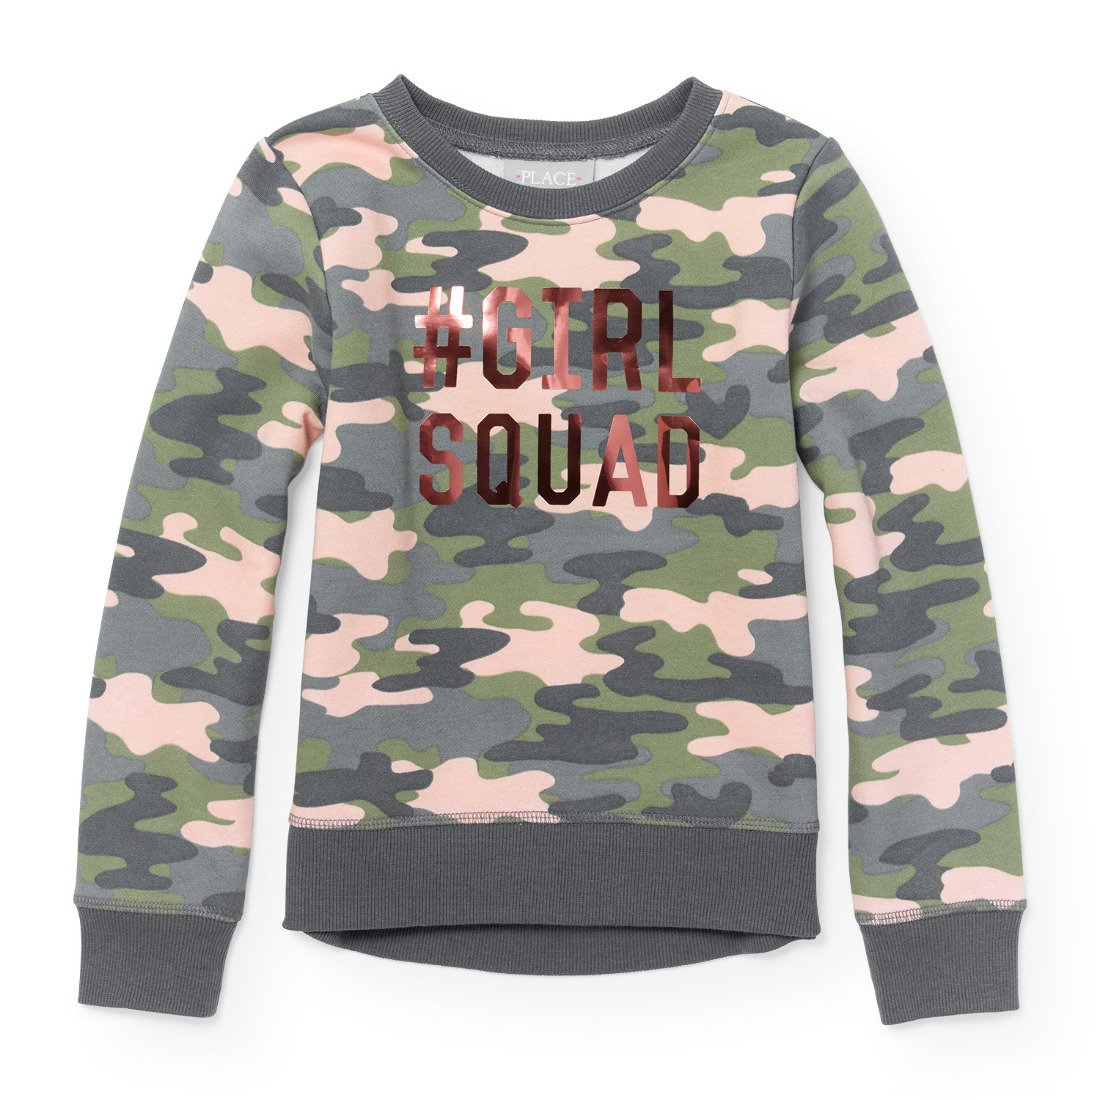 The Children's Place Big Boys' Camoflauge Active Graphic Long Sleeve Top, Multi Clr 91070, XL (14) by The Children's Place (Image #1)